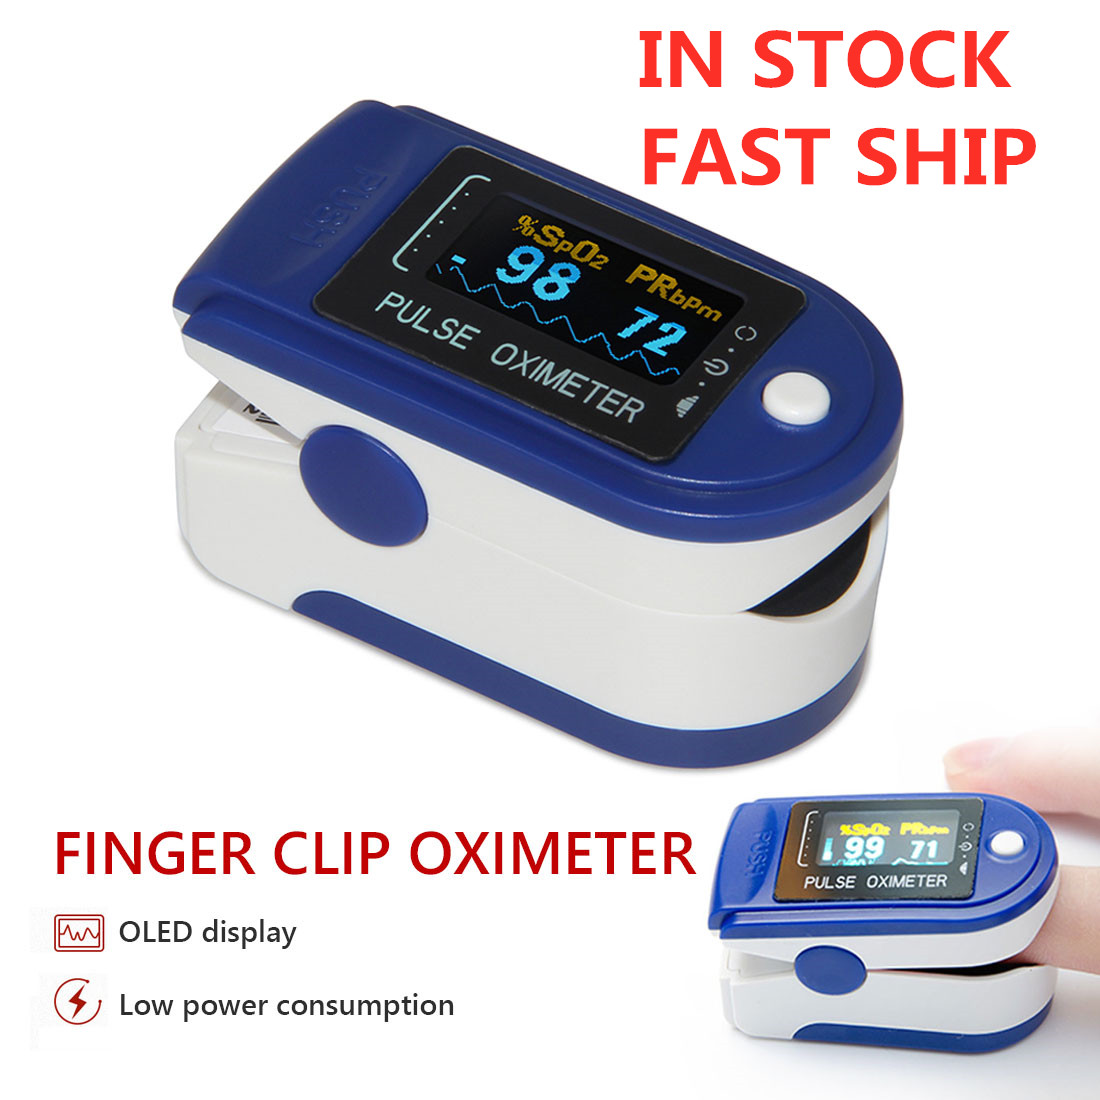 Finger Oximeter Portable Fingertip Pulsioximetro Spo2 Monitor Pulse With LED Display Automatic Switch-off Household Health Monit